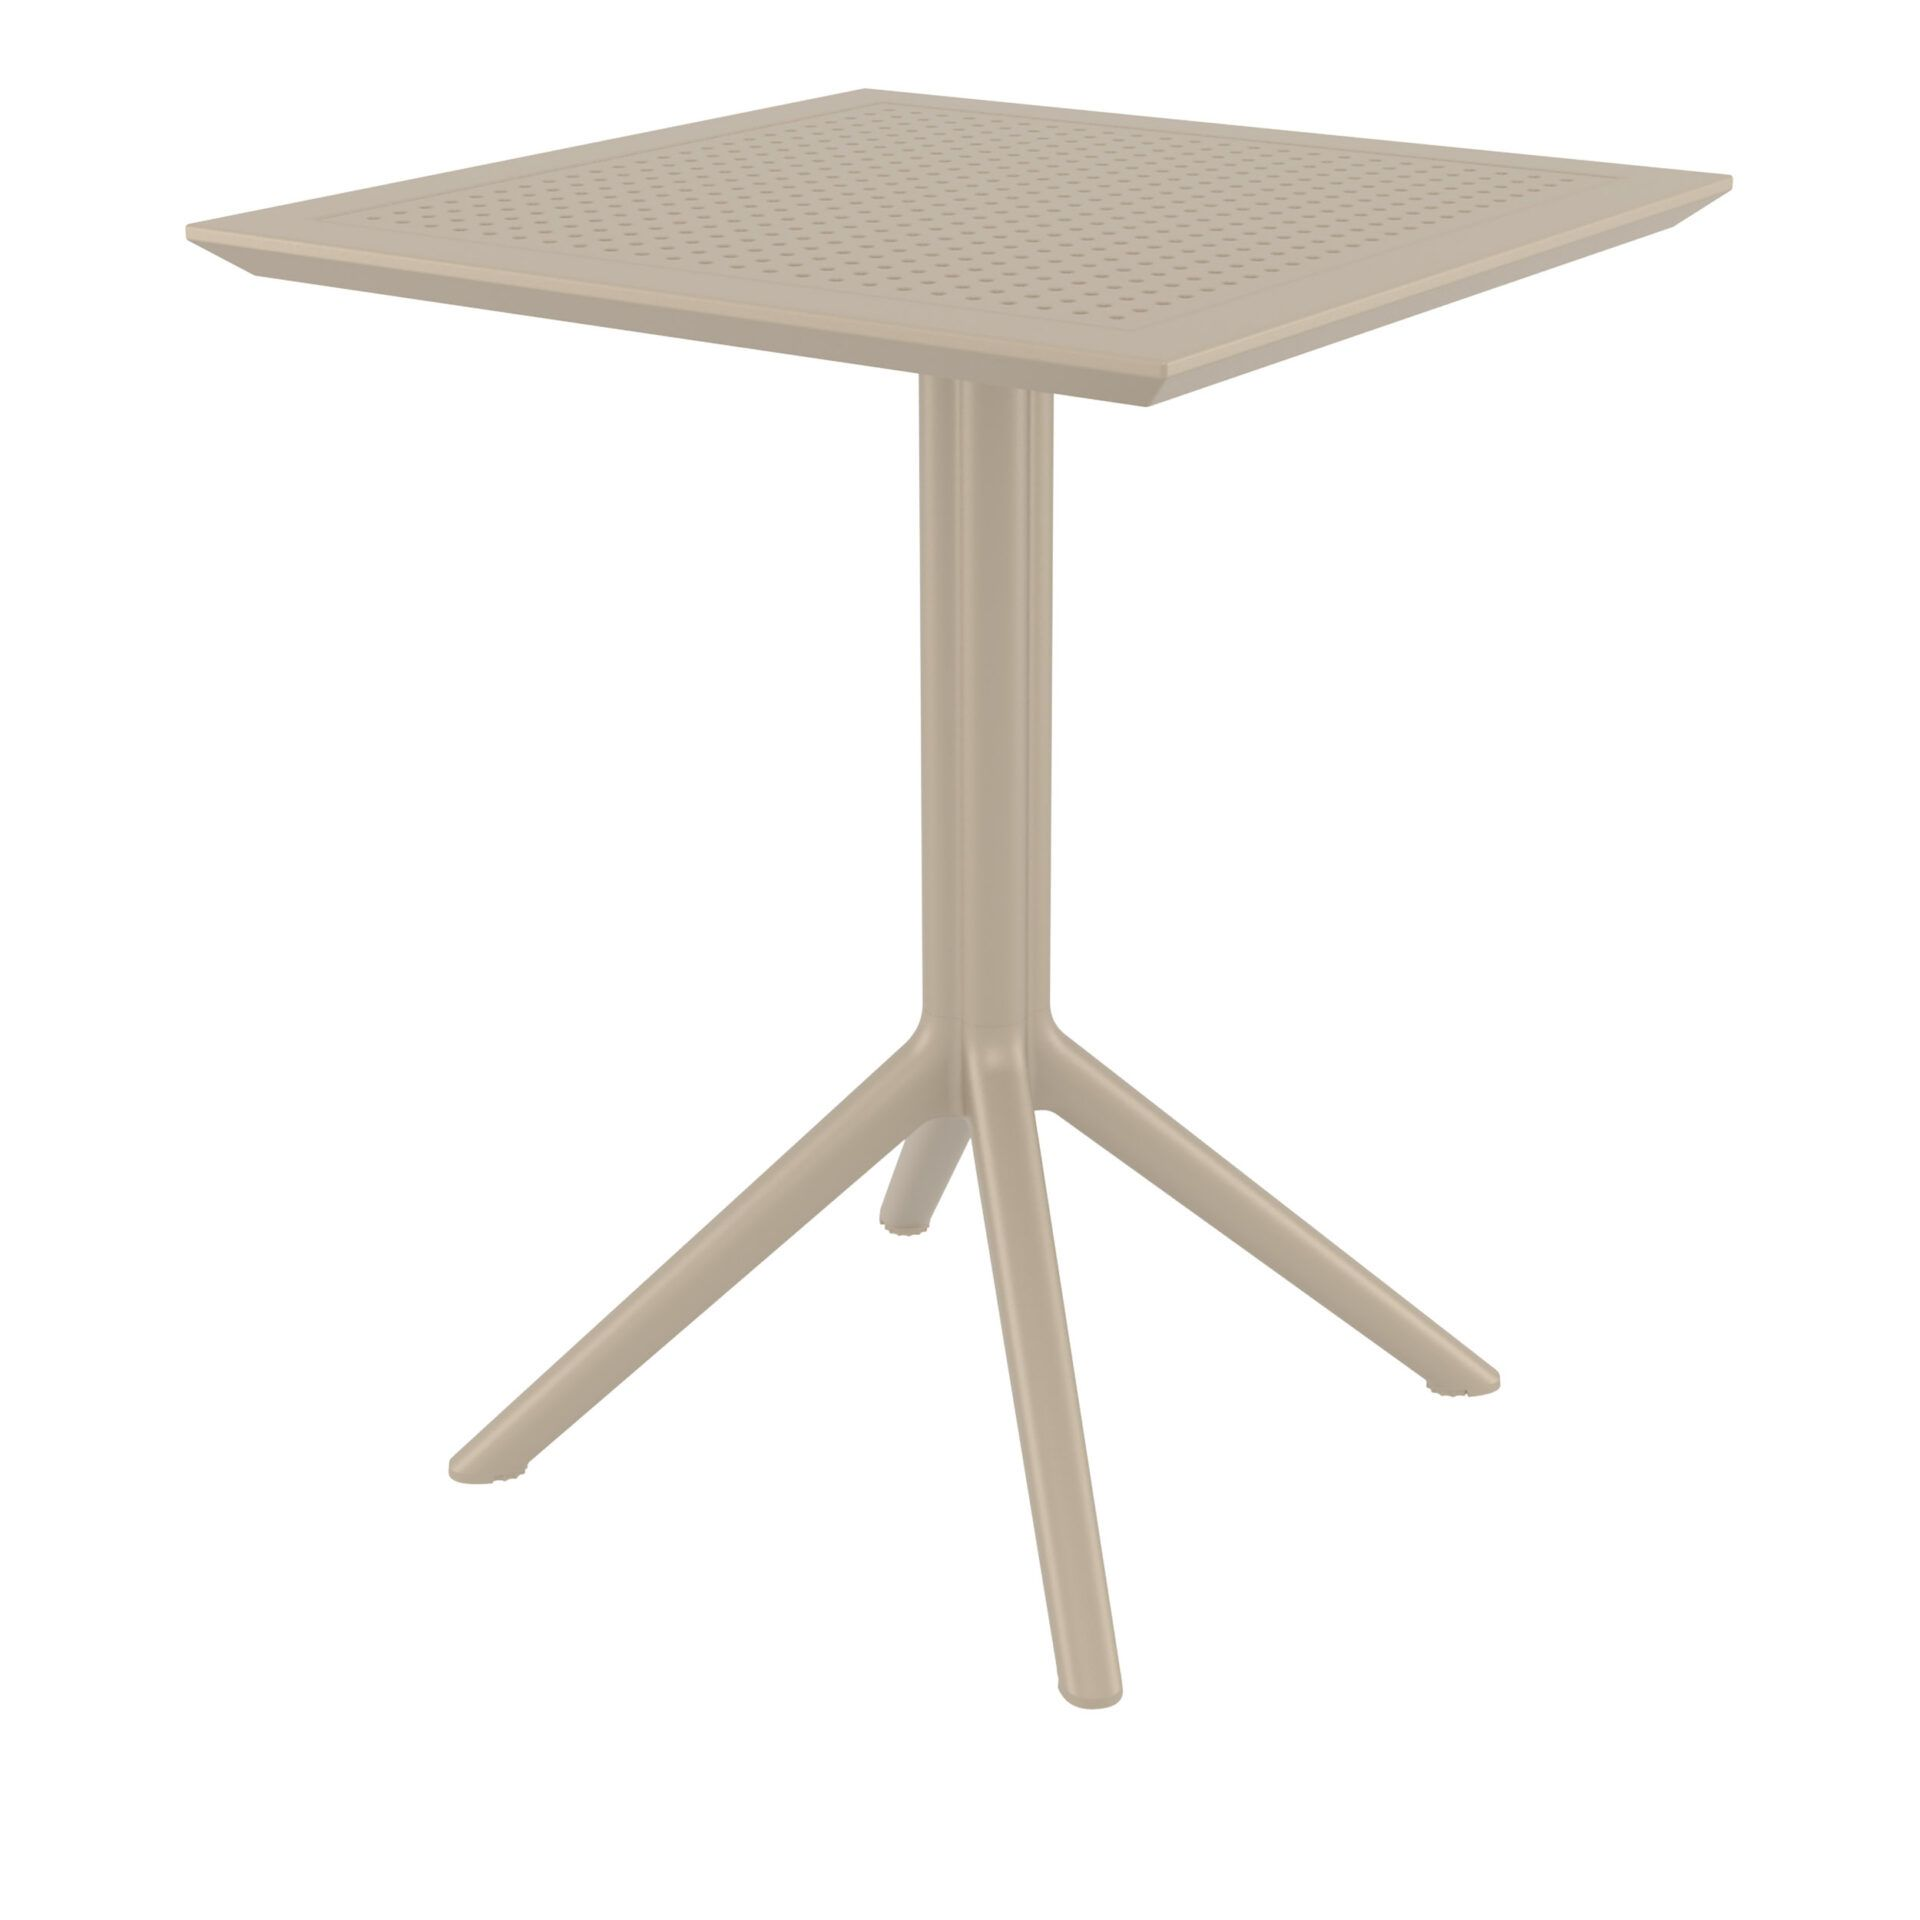 Sky Folding Table 60 - Taupe